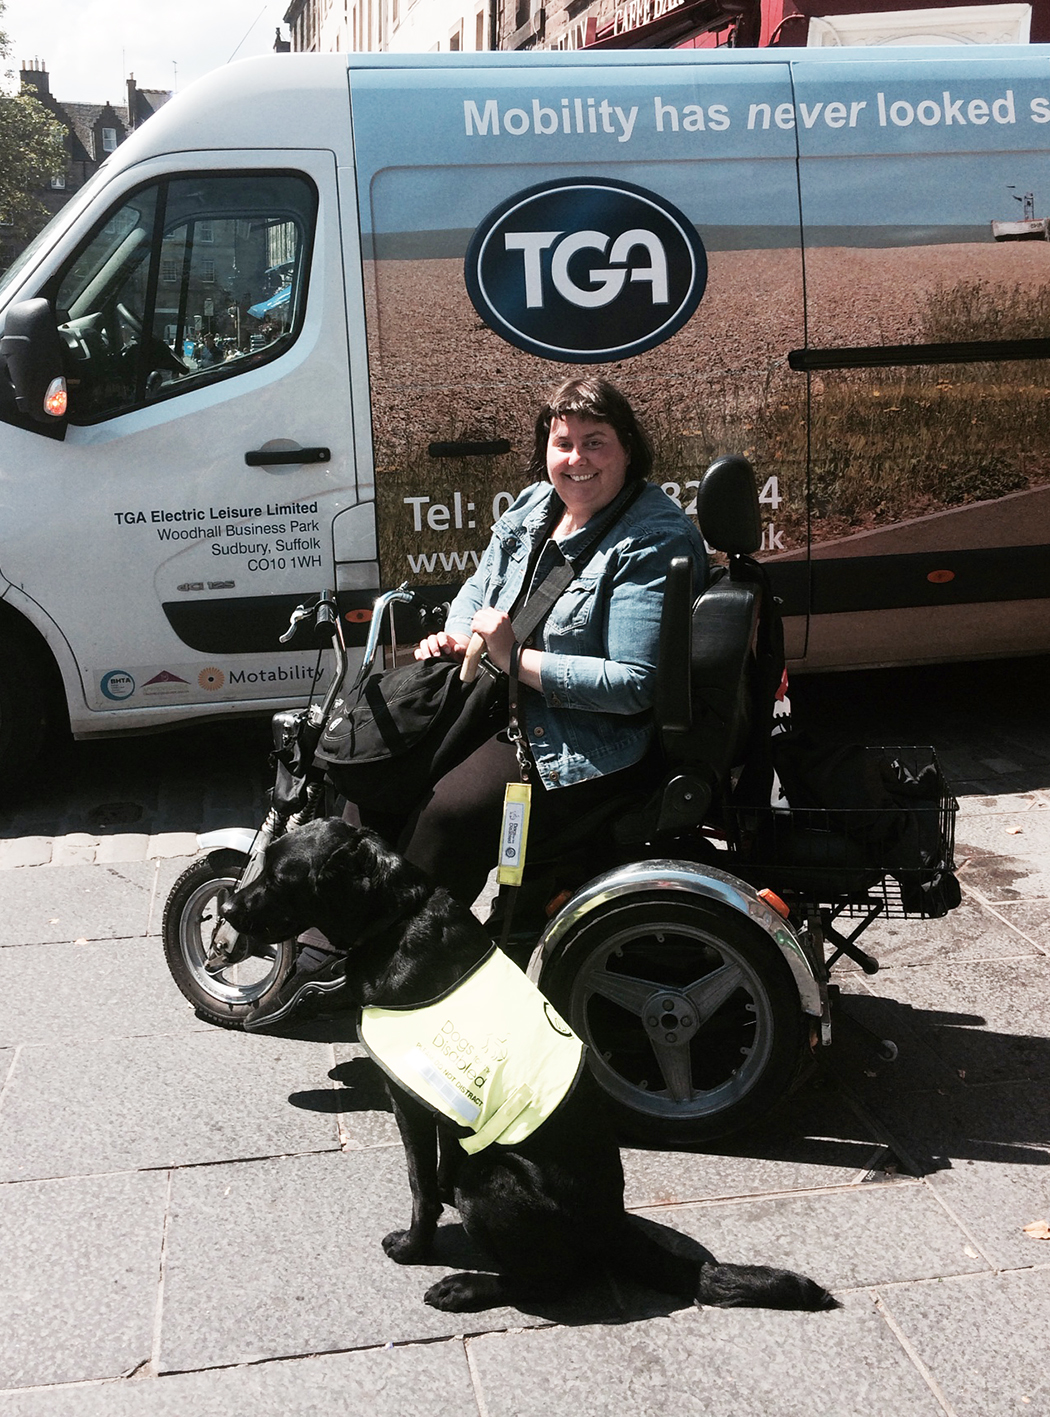 Writer returns to degree thanks to second 'Harley Davidson' TGA Mobility Scooter